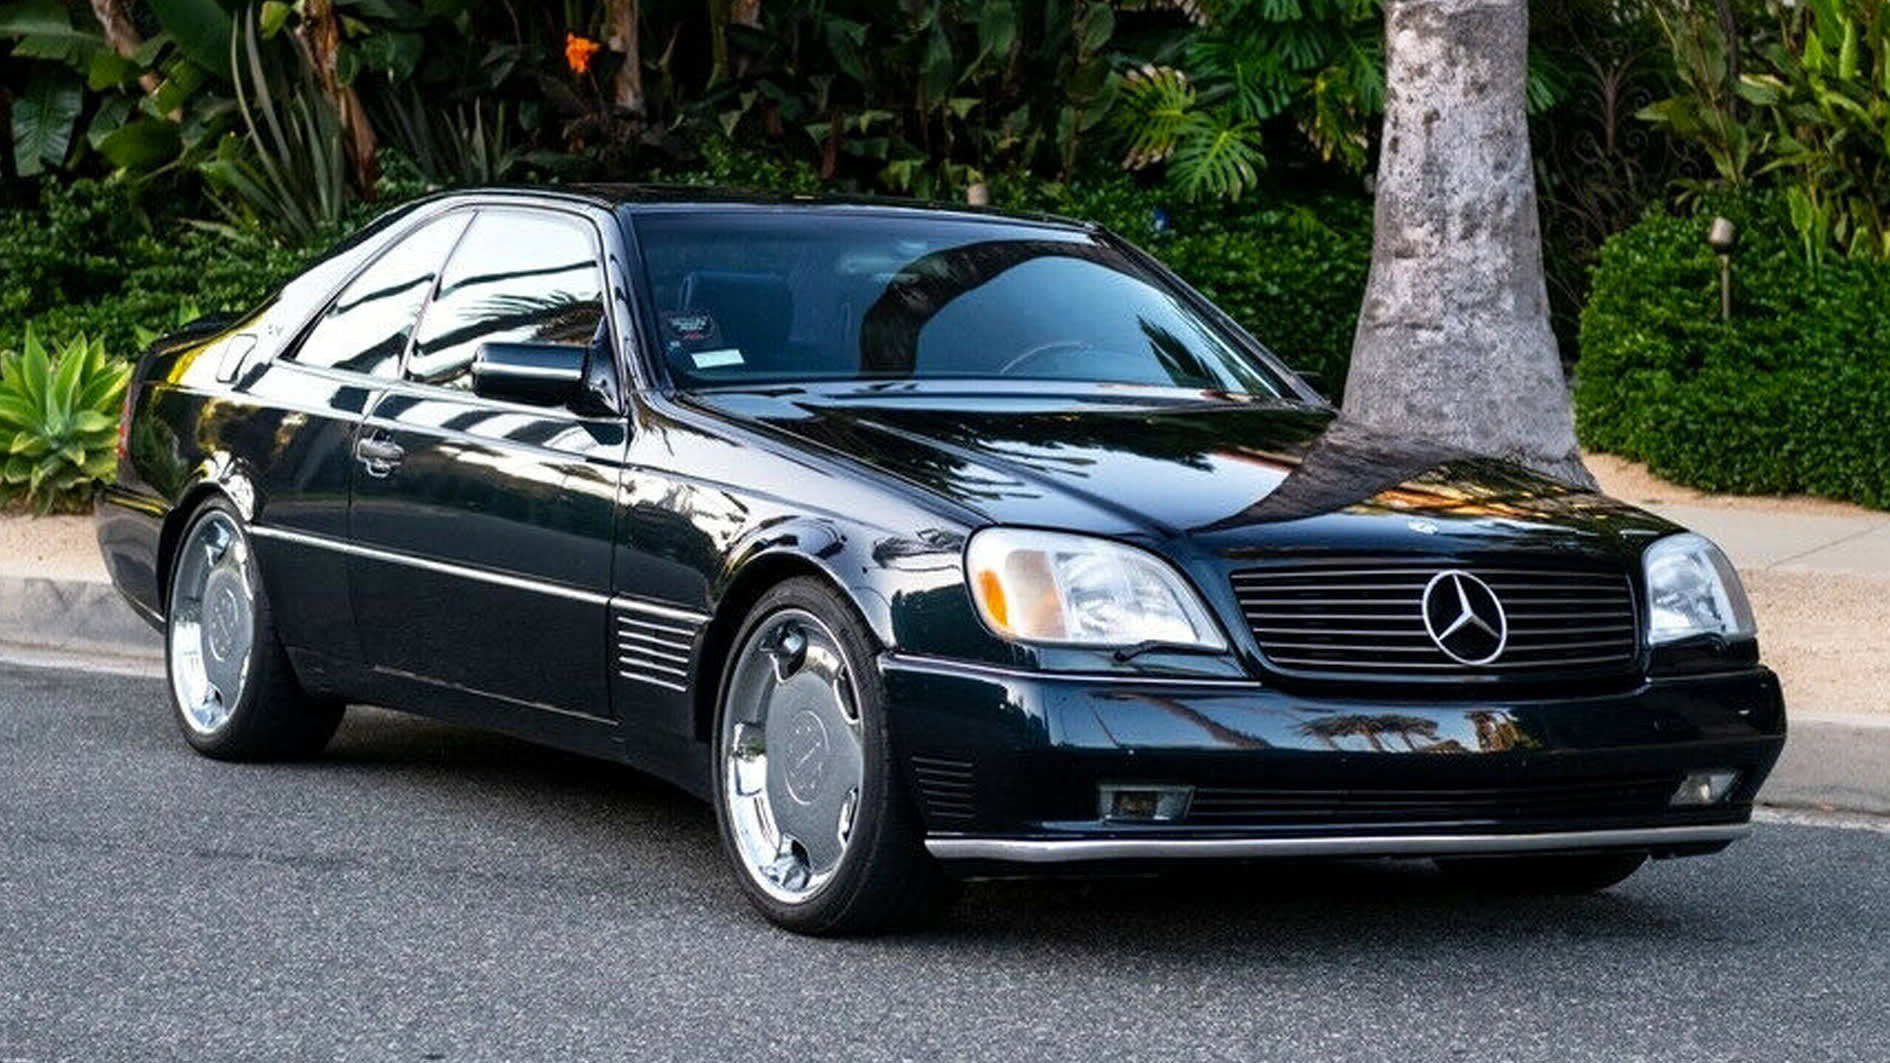 Michael Jordan's old Mercedes-Benz S600 fetched an impressive price at auction